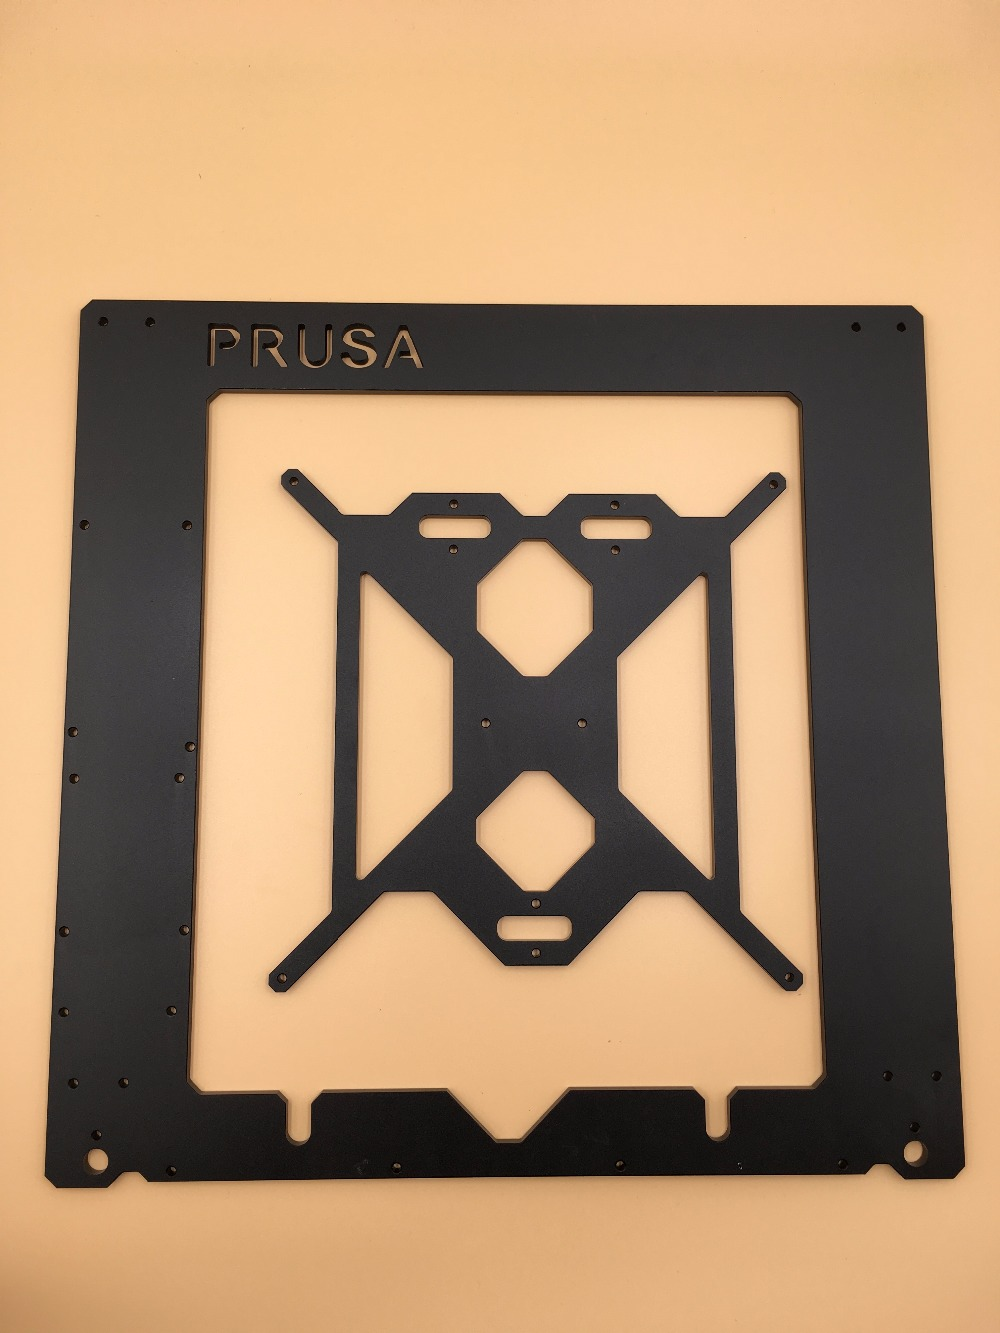 Prusa i3 Rework 3D printer aluminum frame kit RepRap Prusa i3 aluminum frame 3D Printer DIY 6 mm new anet e10 e12 3d printer diy kit aluminum frame multi language large printing size high precision reprap i3 with filament